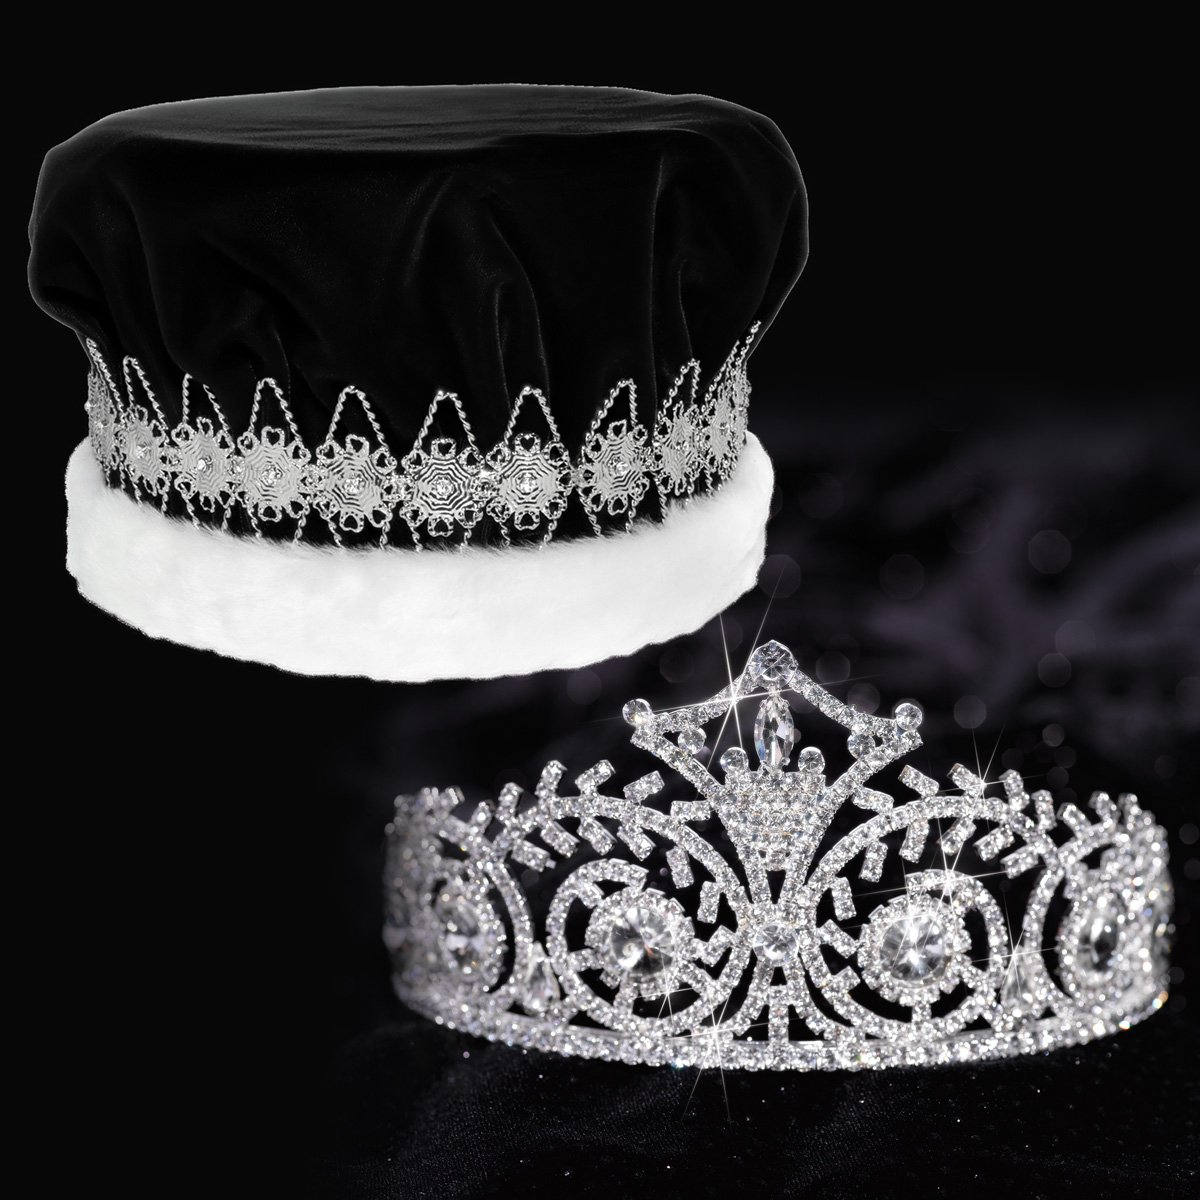 Elsa Royalty Set, 3 Inch High Elsa Tiara and Black Velvet Crown with Silver Floral Band, White Fur